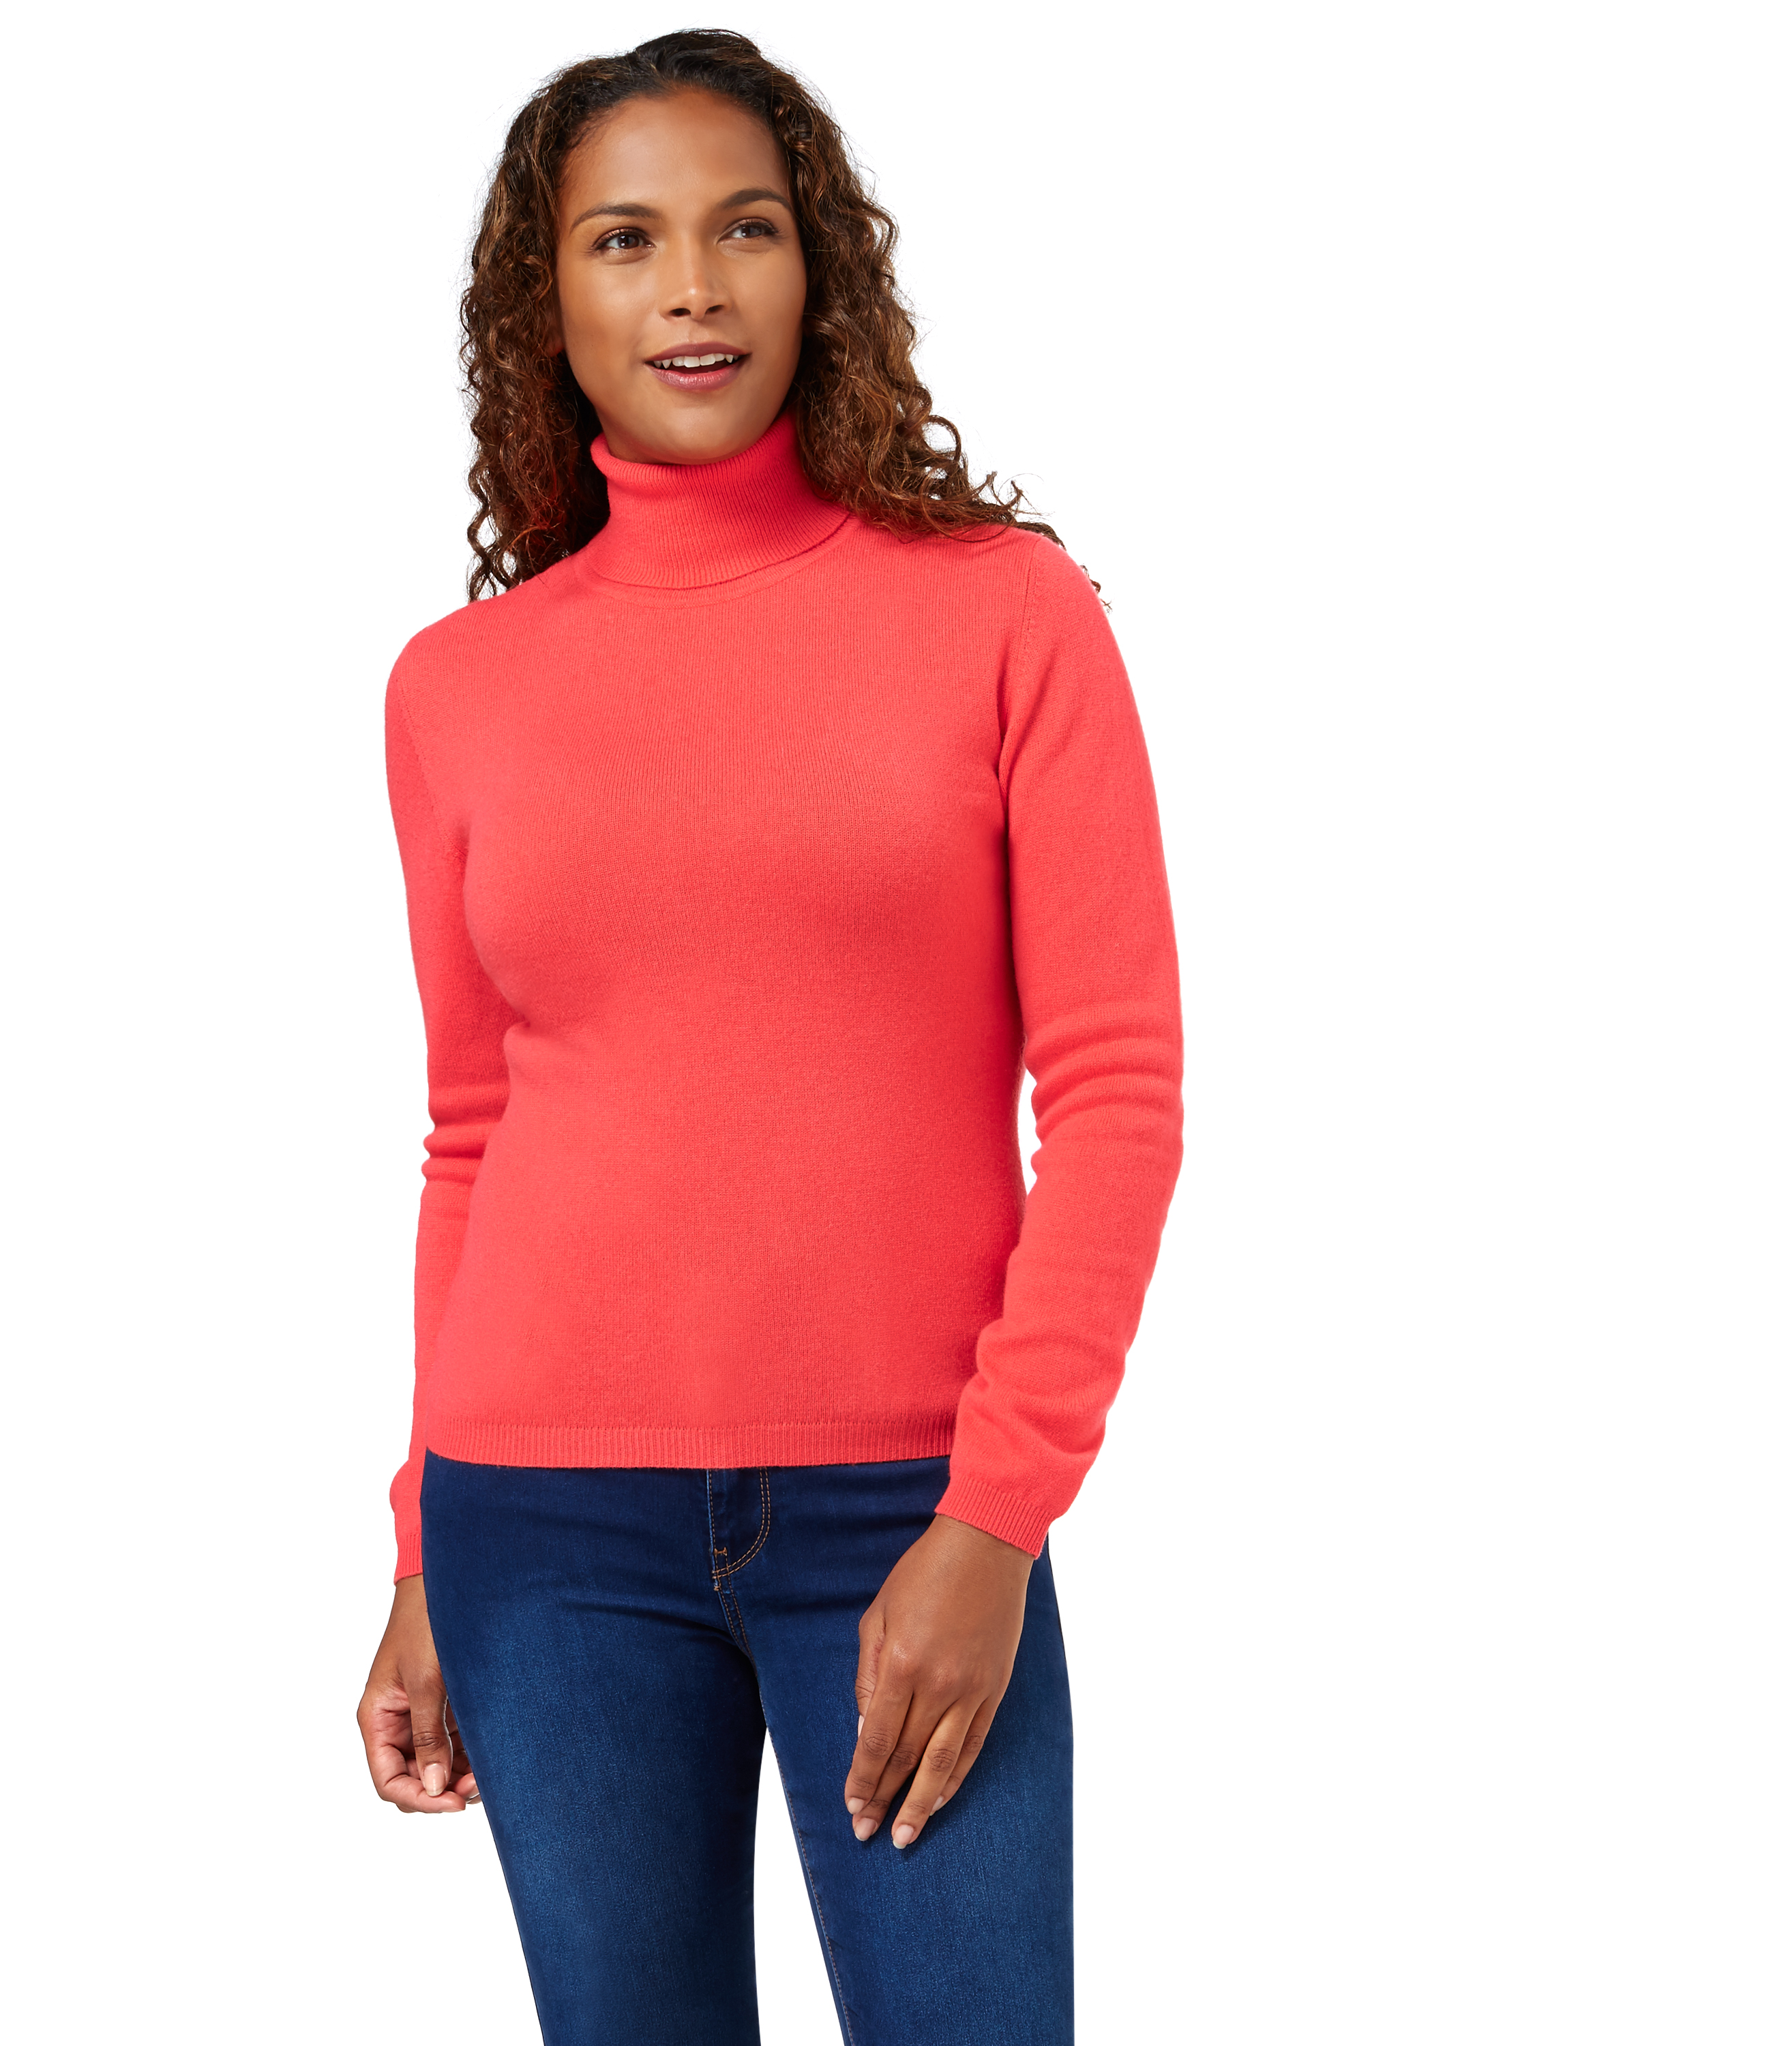 Find polo neck sweater women at ShopStyle. Shop the latest collection of polo neck sweater women from the most popular stores - all in one place.